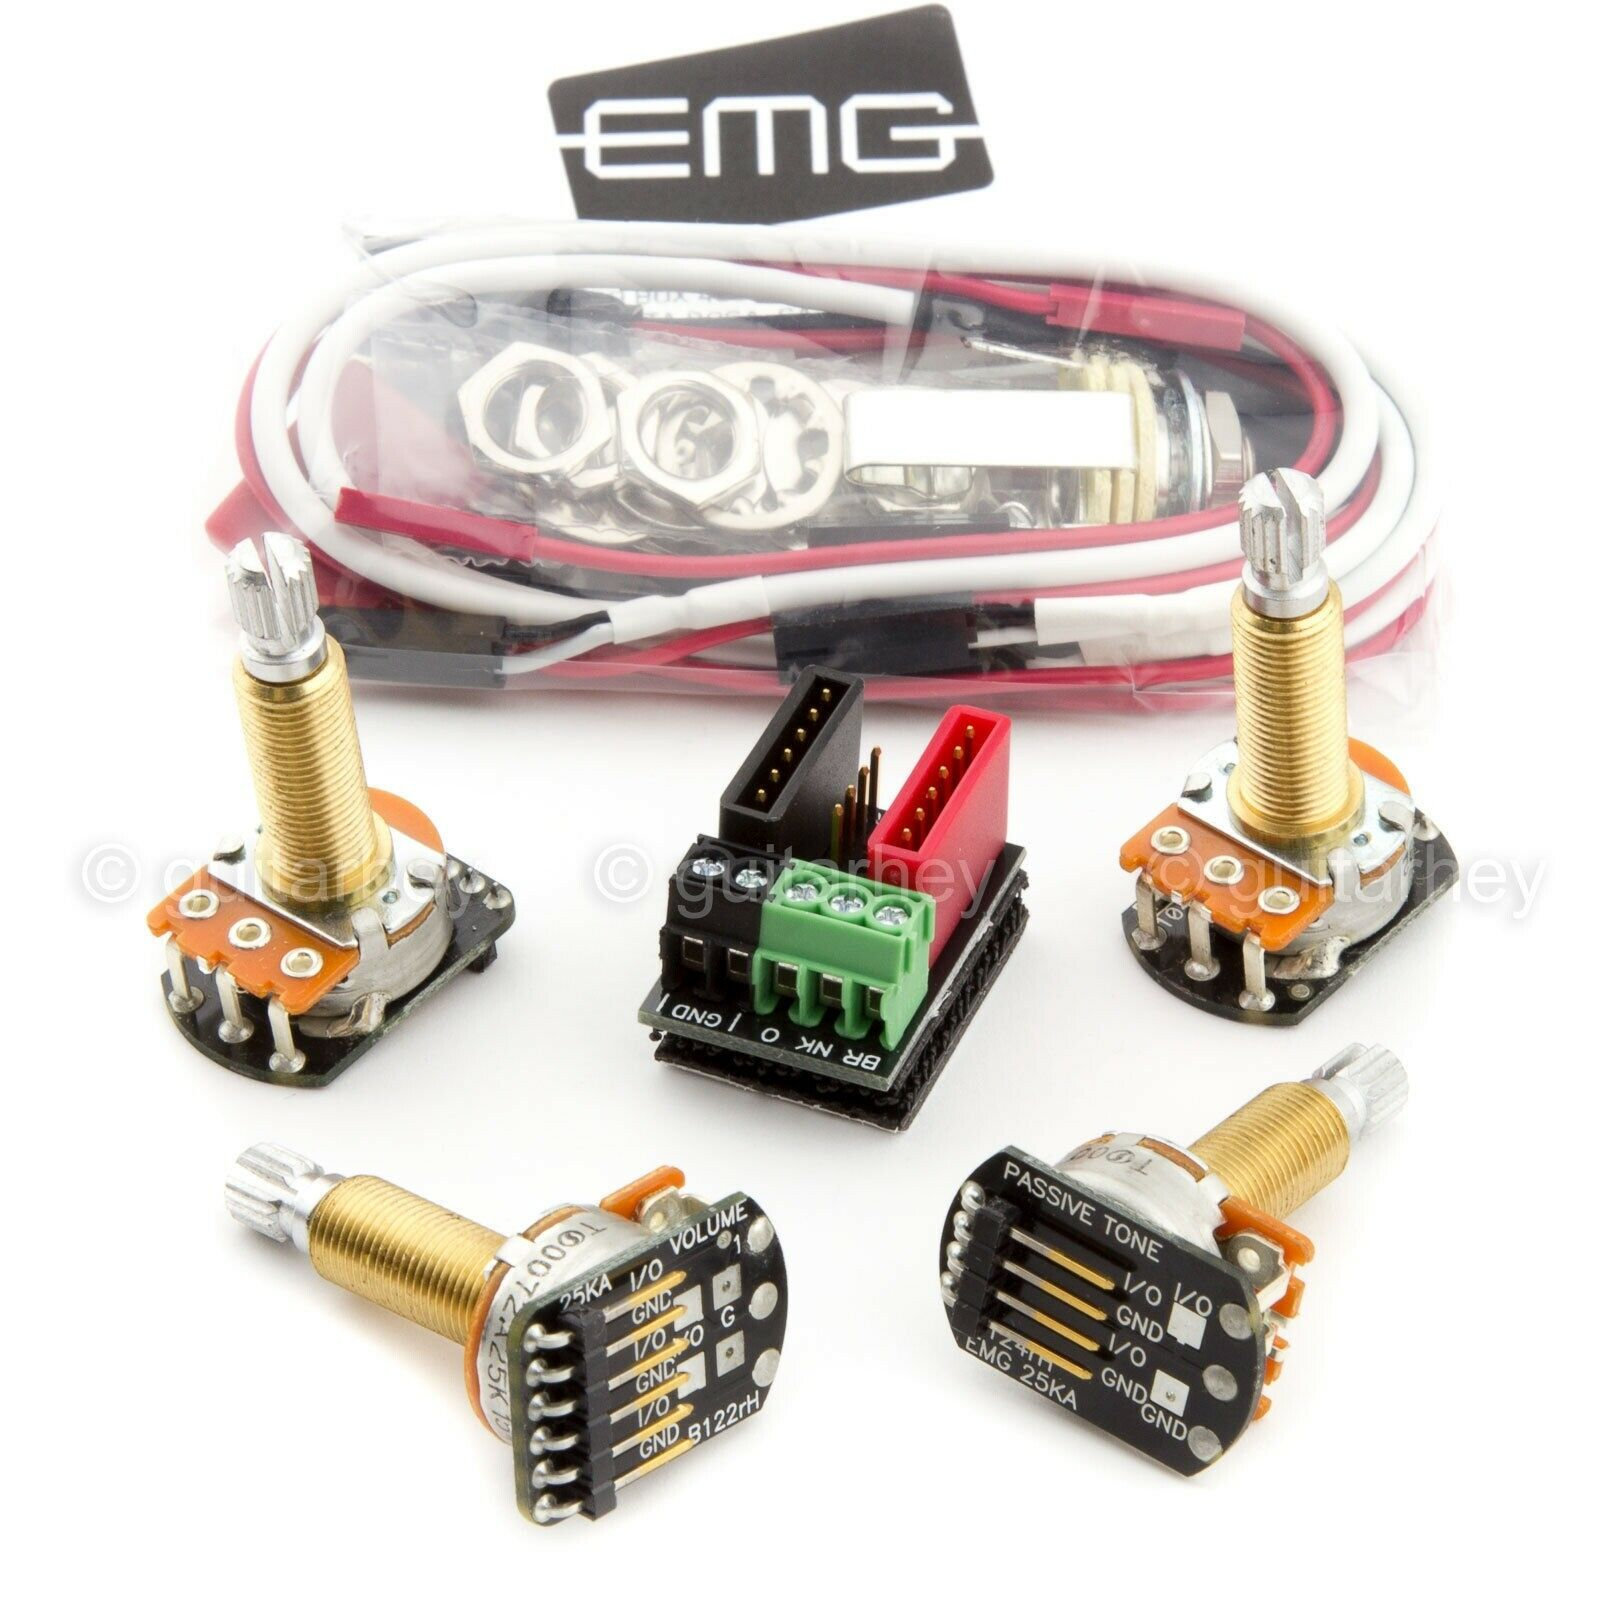 NEW EMG Solderless Wiring Conversion Kit for 1/2 pickups ACTIVE LONG-SHAFT  SPLIT 1 of 3Only 3 available NEW EMG Solderless Wiring Conversion Kit ...